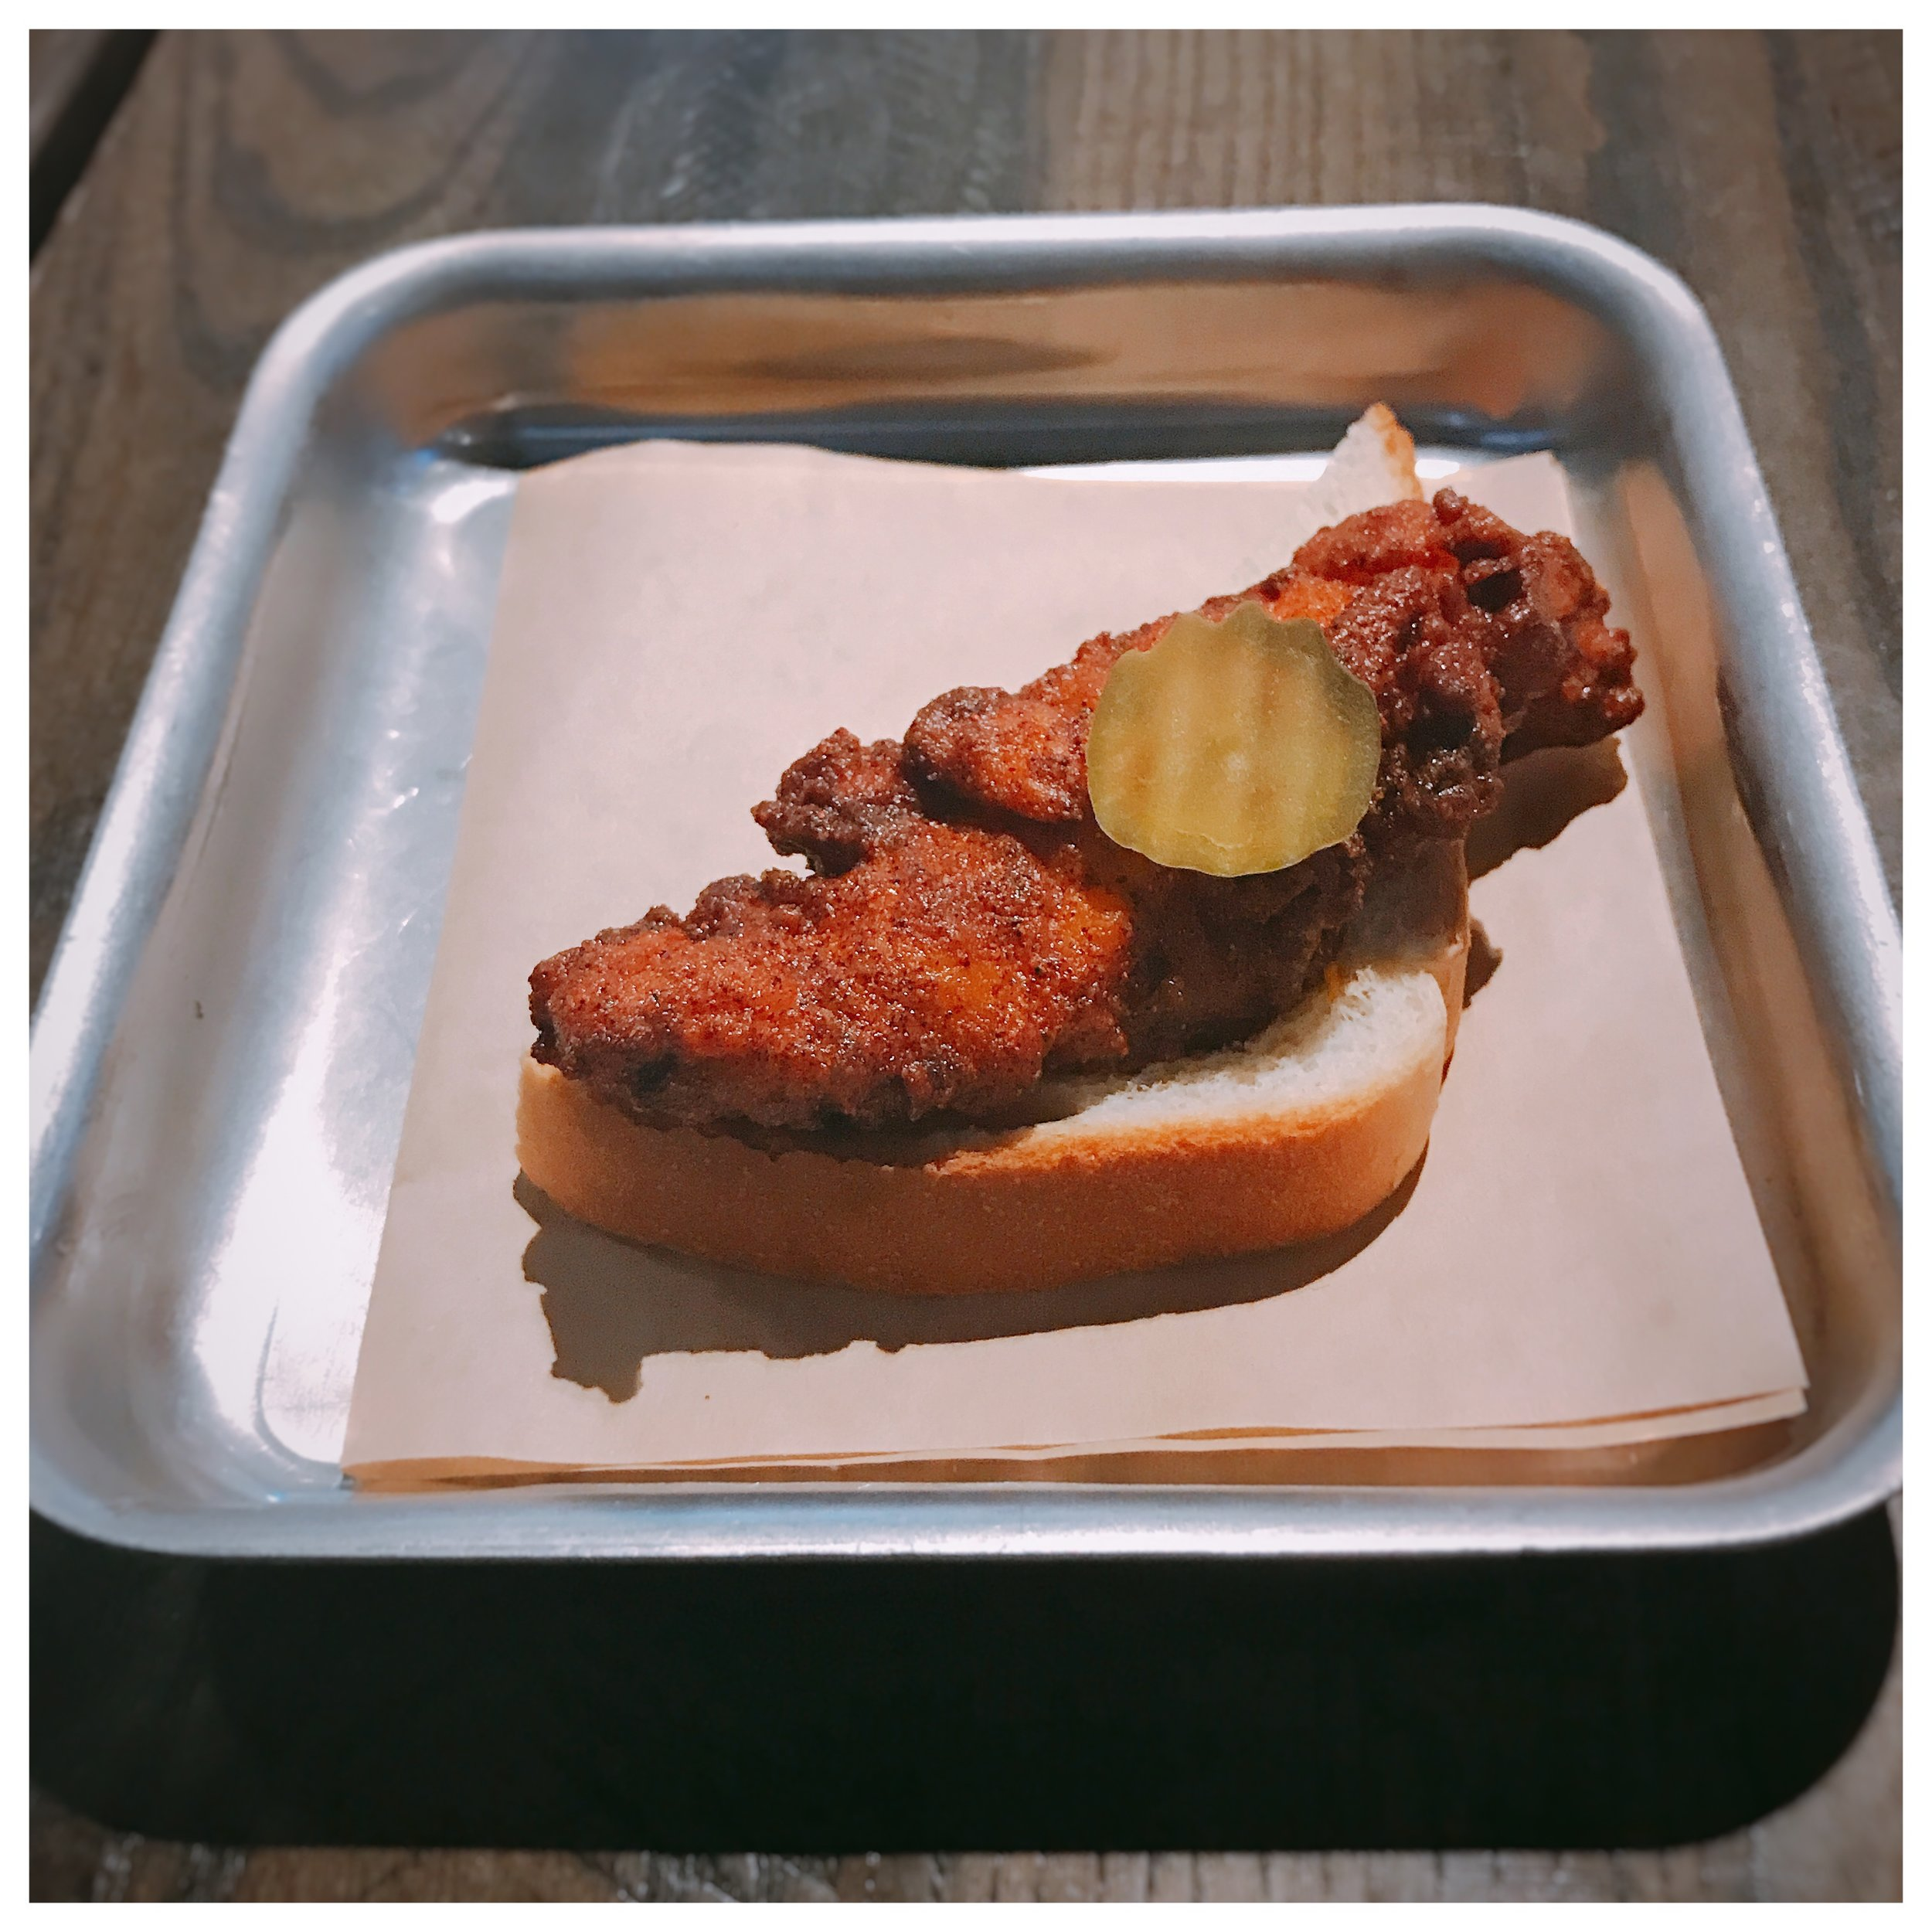 Nashville Hot Chicken - So this was my first time having Nashville Hot Chicken and I feel like I've been missing out! I can't compare it to Hot Chicken in Nashville or any other place since this was my first taste of the dish, but it was tasty. I'm a fan, and you like your chicken with a some 'kick', you will be also. I thought the flavor here was great, and the heat came through really well at the end of each bite. Many dishes that are marketed as spicy aren't, but I can say I did get a bit of spice here which was nice. It's not overly, mouth on fire spicy, but for me it had the right balance. I'll be going back to get the fully sandwich!